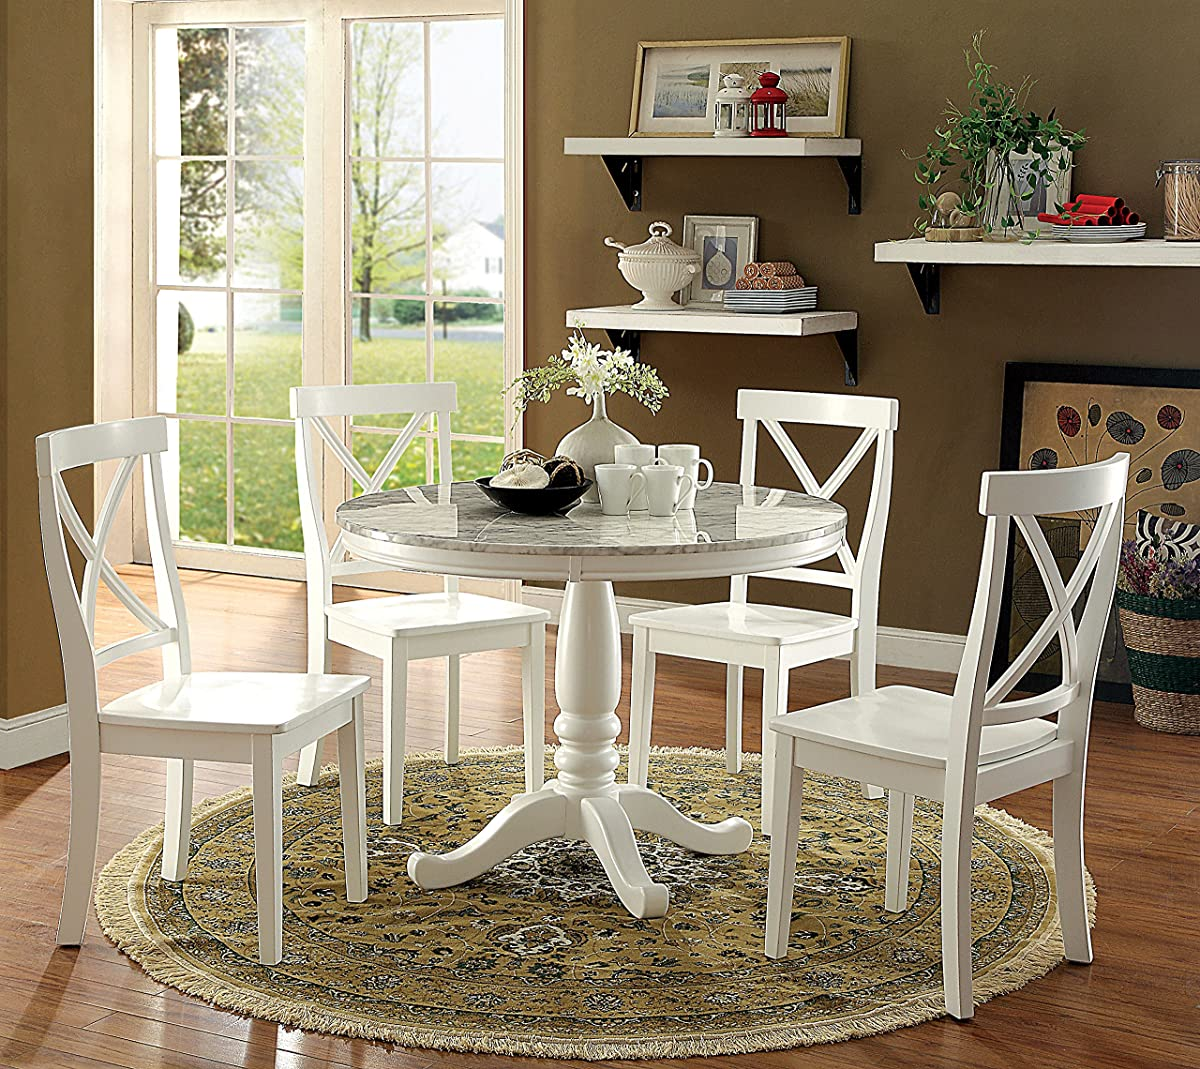 HOMES: Inside + Out IDF-3546RT Ollie Dining Table Cottage Round